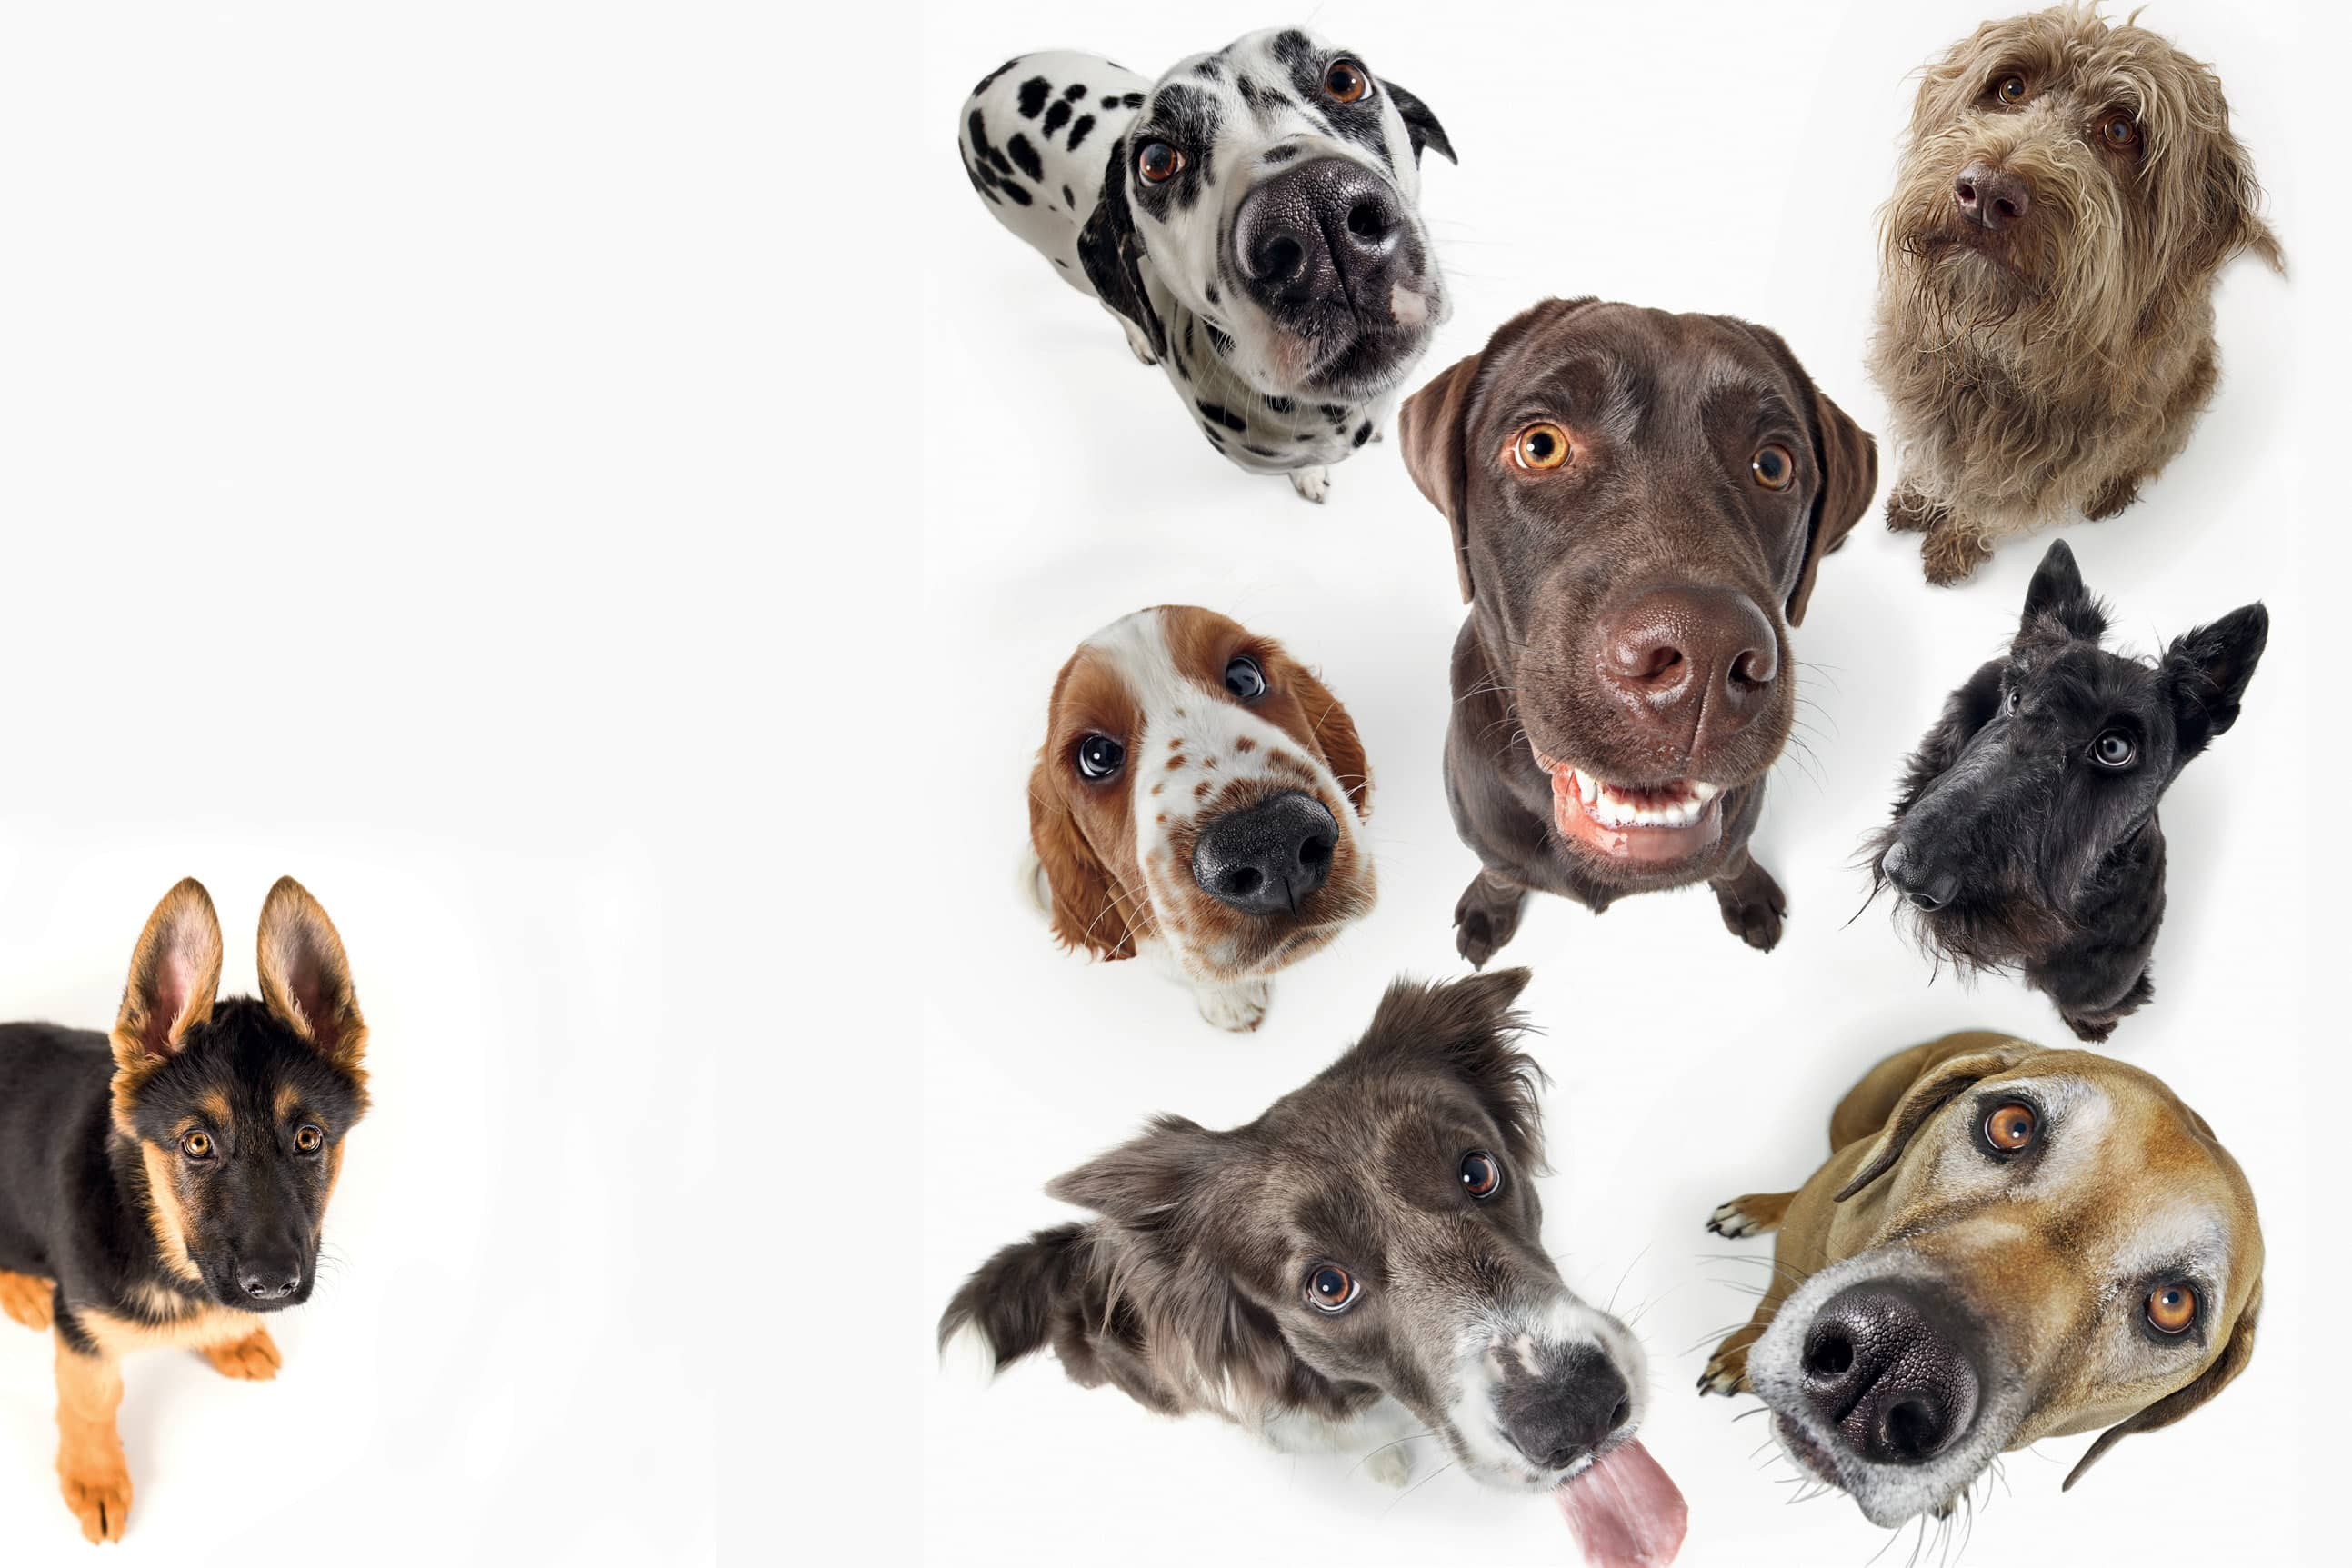 How Dogs Can Help Us Live Longer Healthier Lives